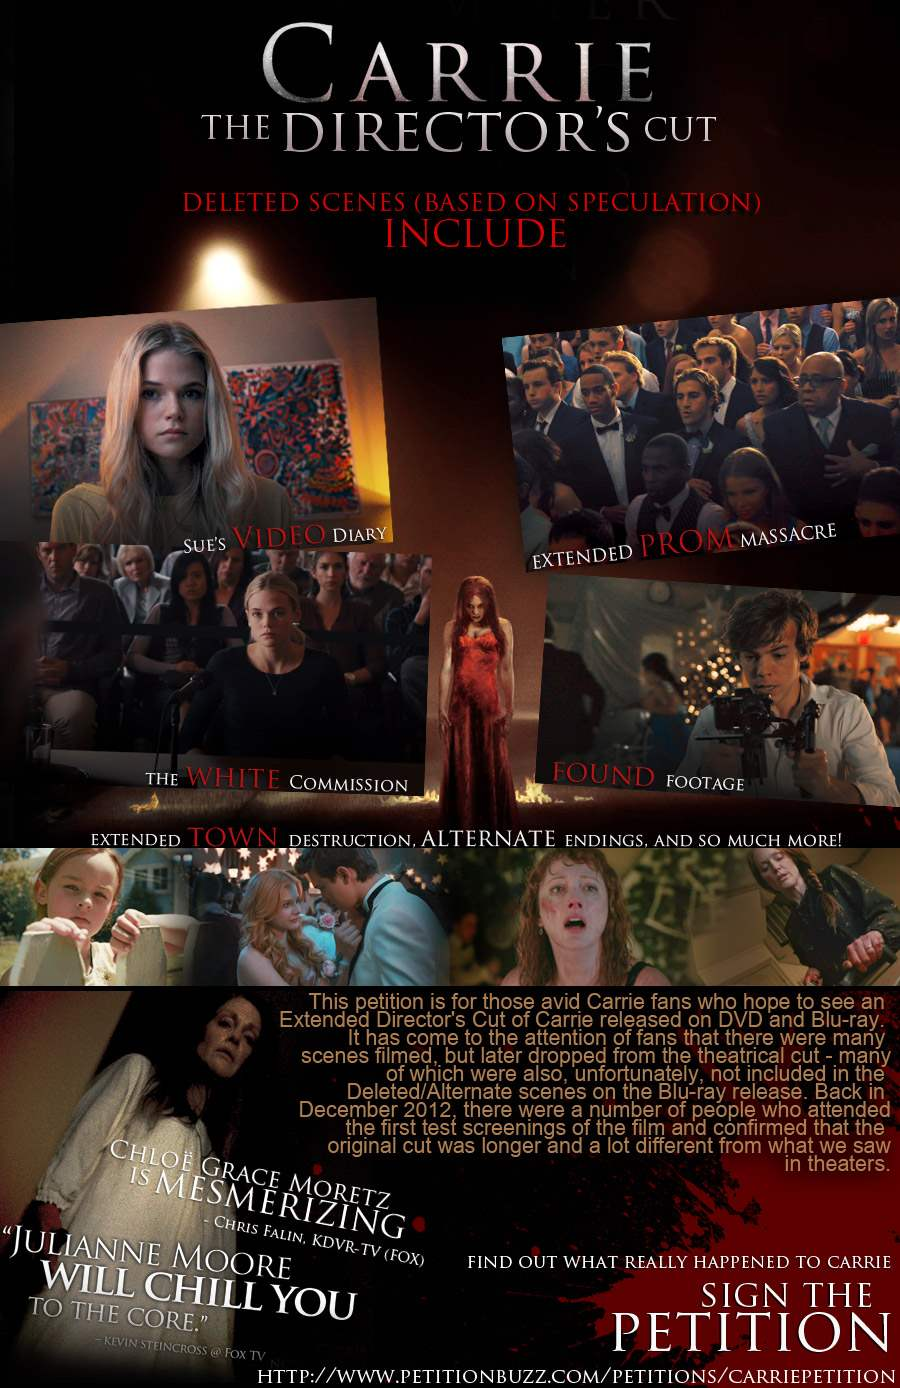 Carrie Director's Cut